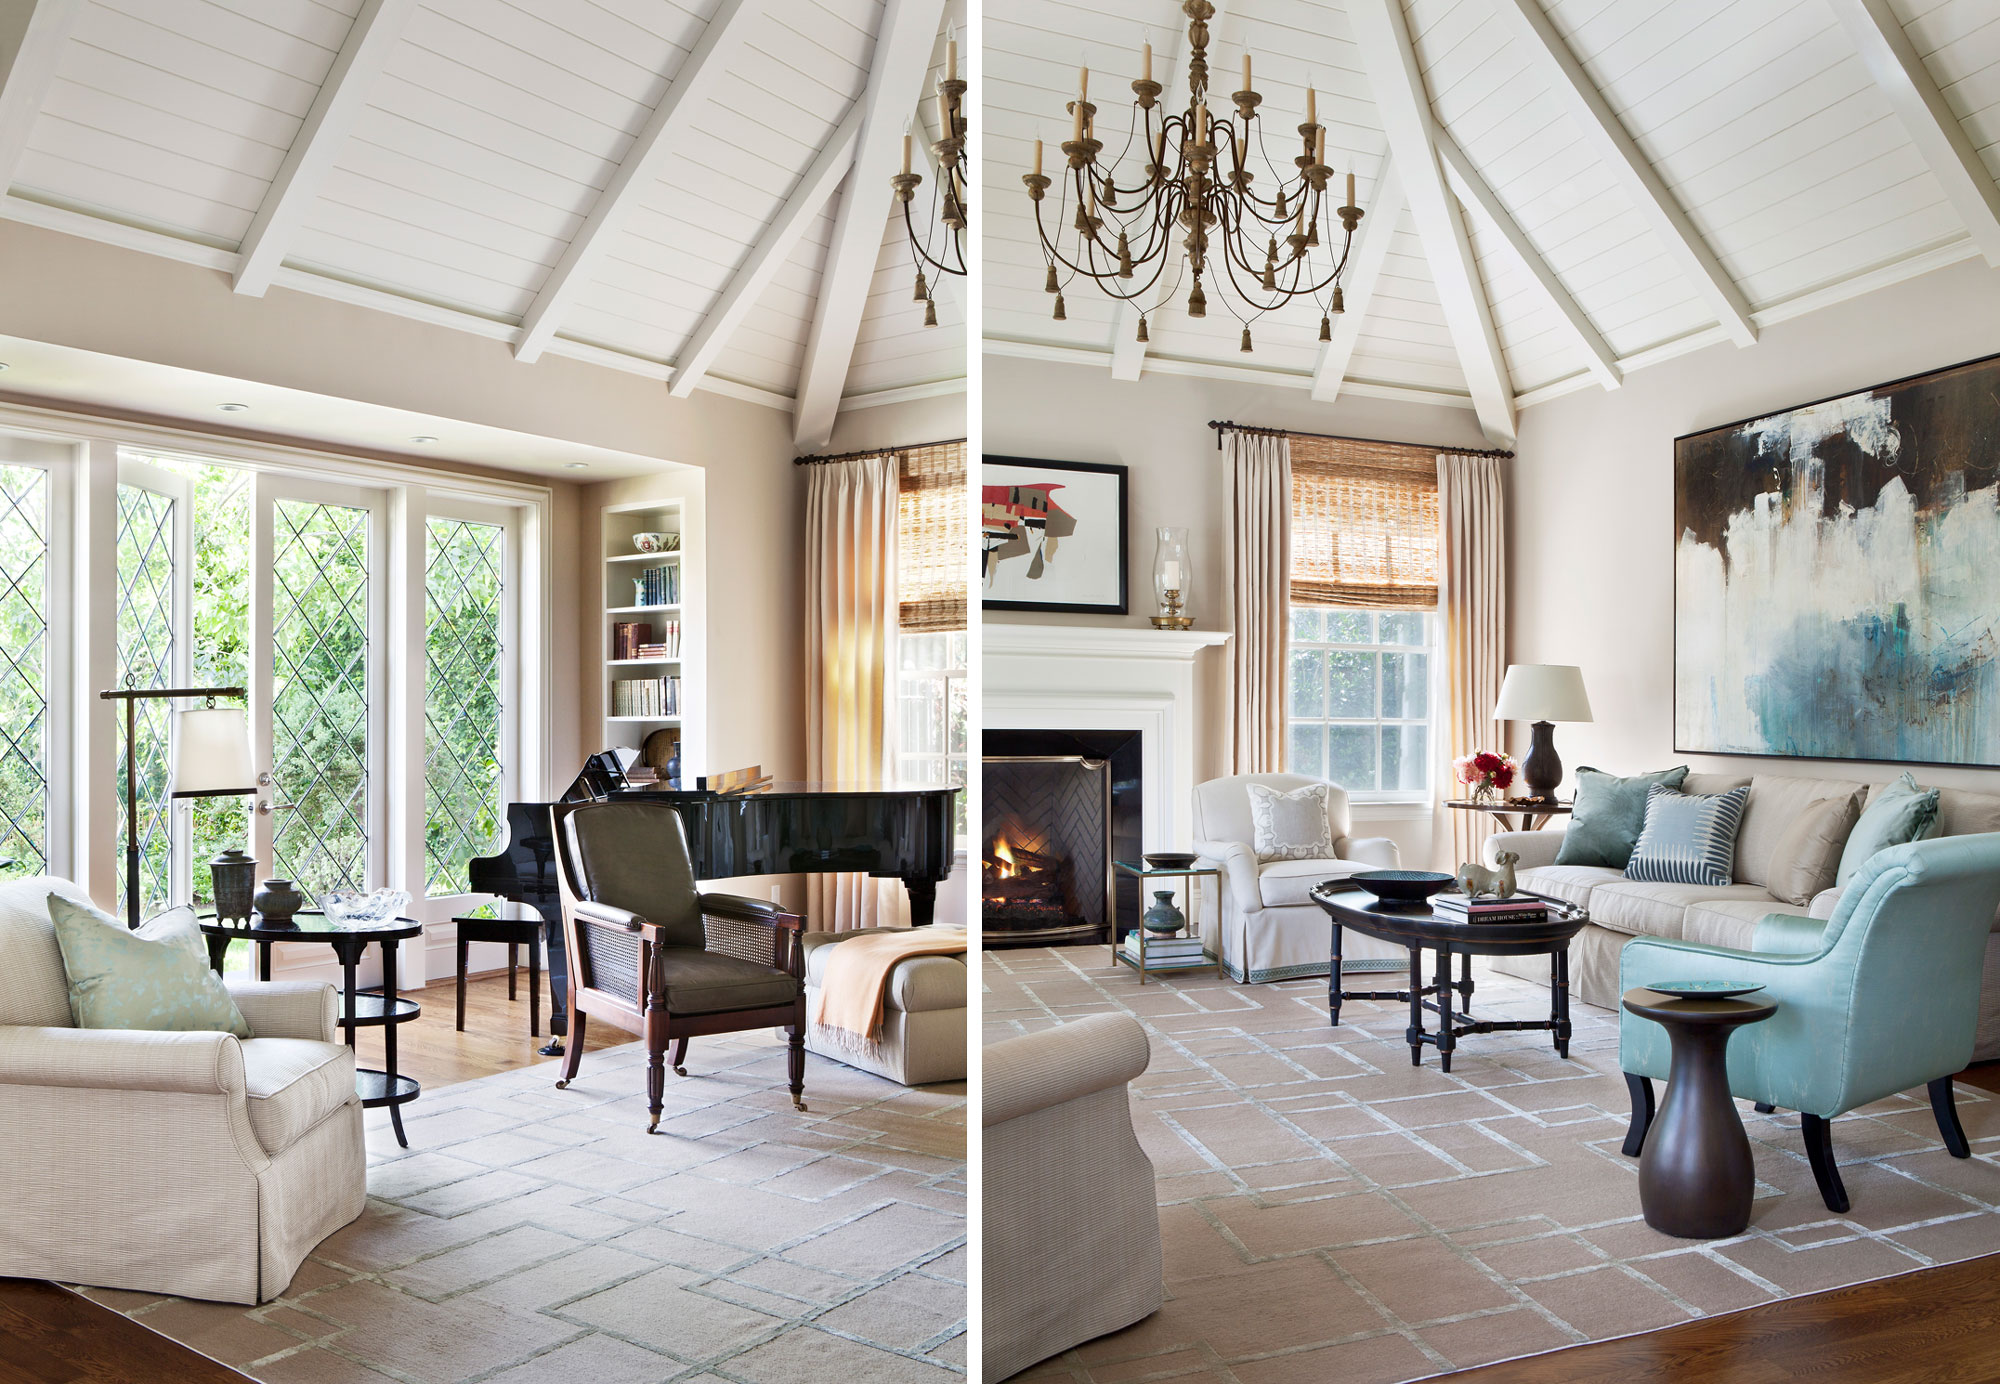 traditional-living-room-music-room-fireplace-vaulted-tongue-and-groove-ceiling-ward-jewell.jpg